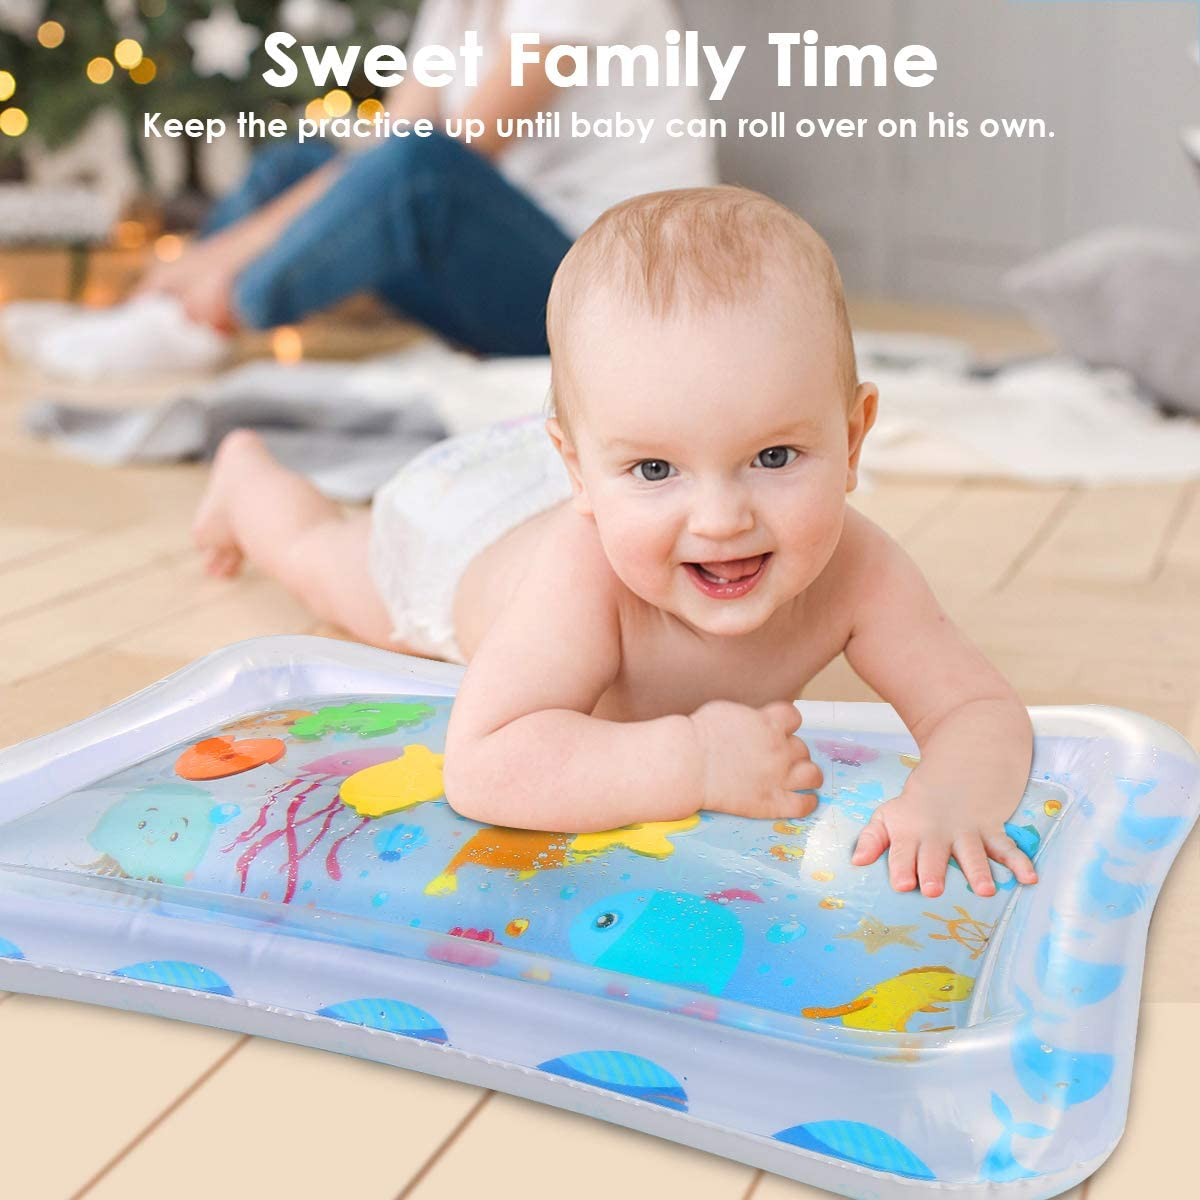 Wallfire Baby Inflatable Water Mat Sea World Infants Toddlers Tummy Time Play Mat Toy with 5 Floating Toys for 3 6 9 Months Newborn Boy Girl